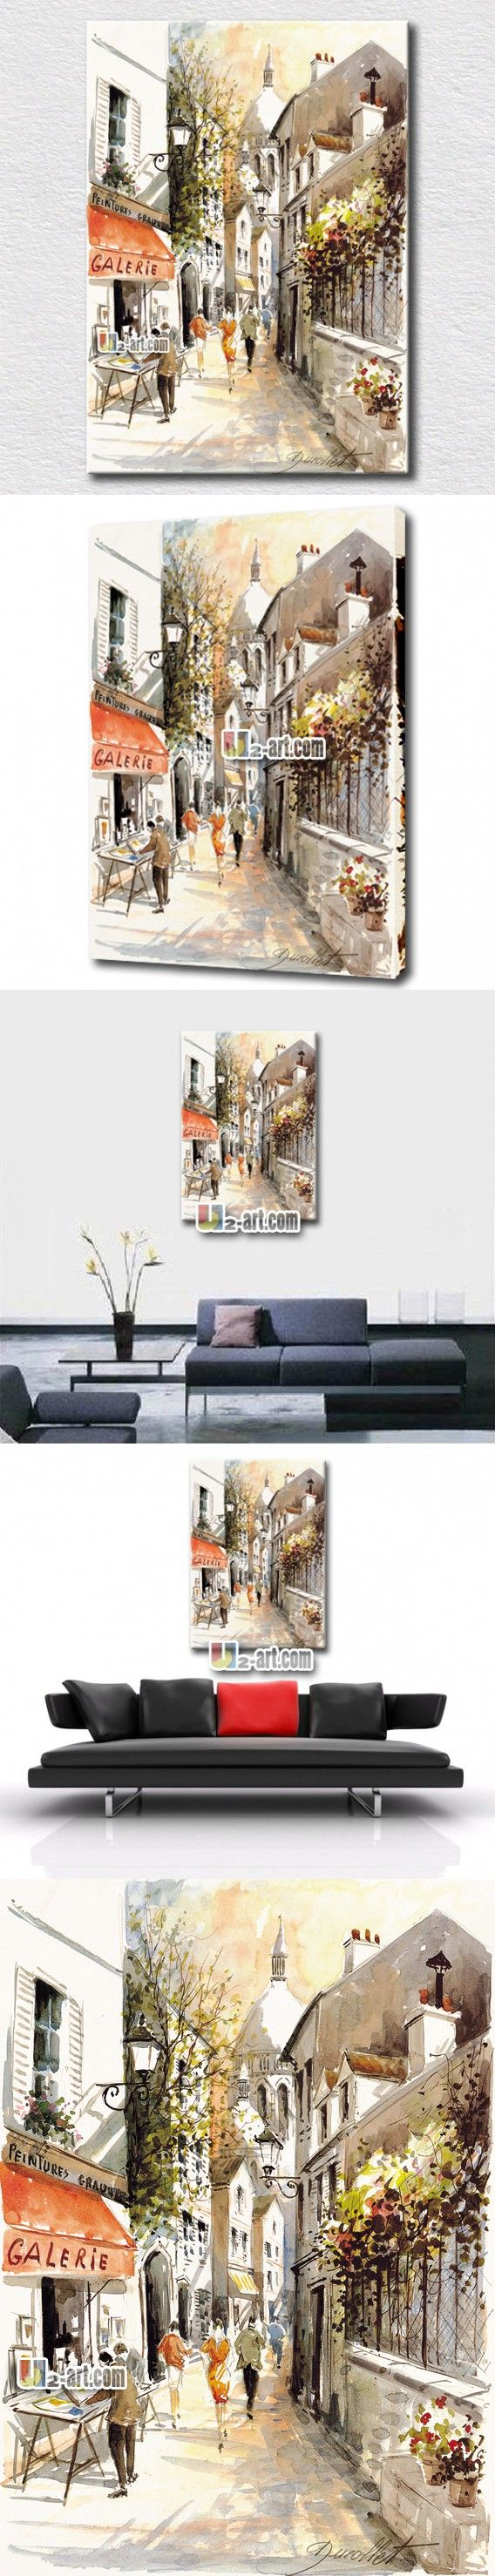 Mediterranean landscape oil painting simple style scenery prints on canvas art for home decoration $11.76